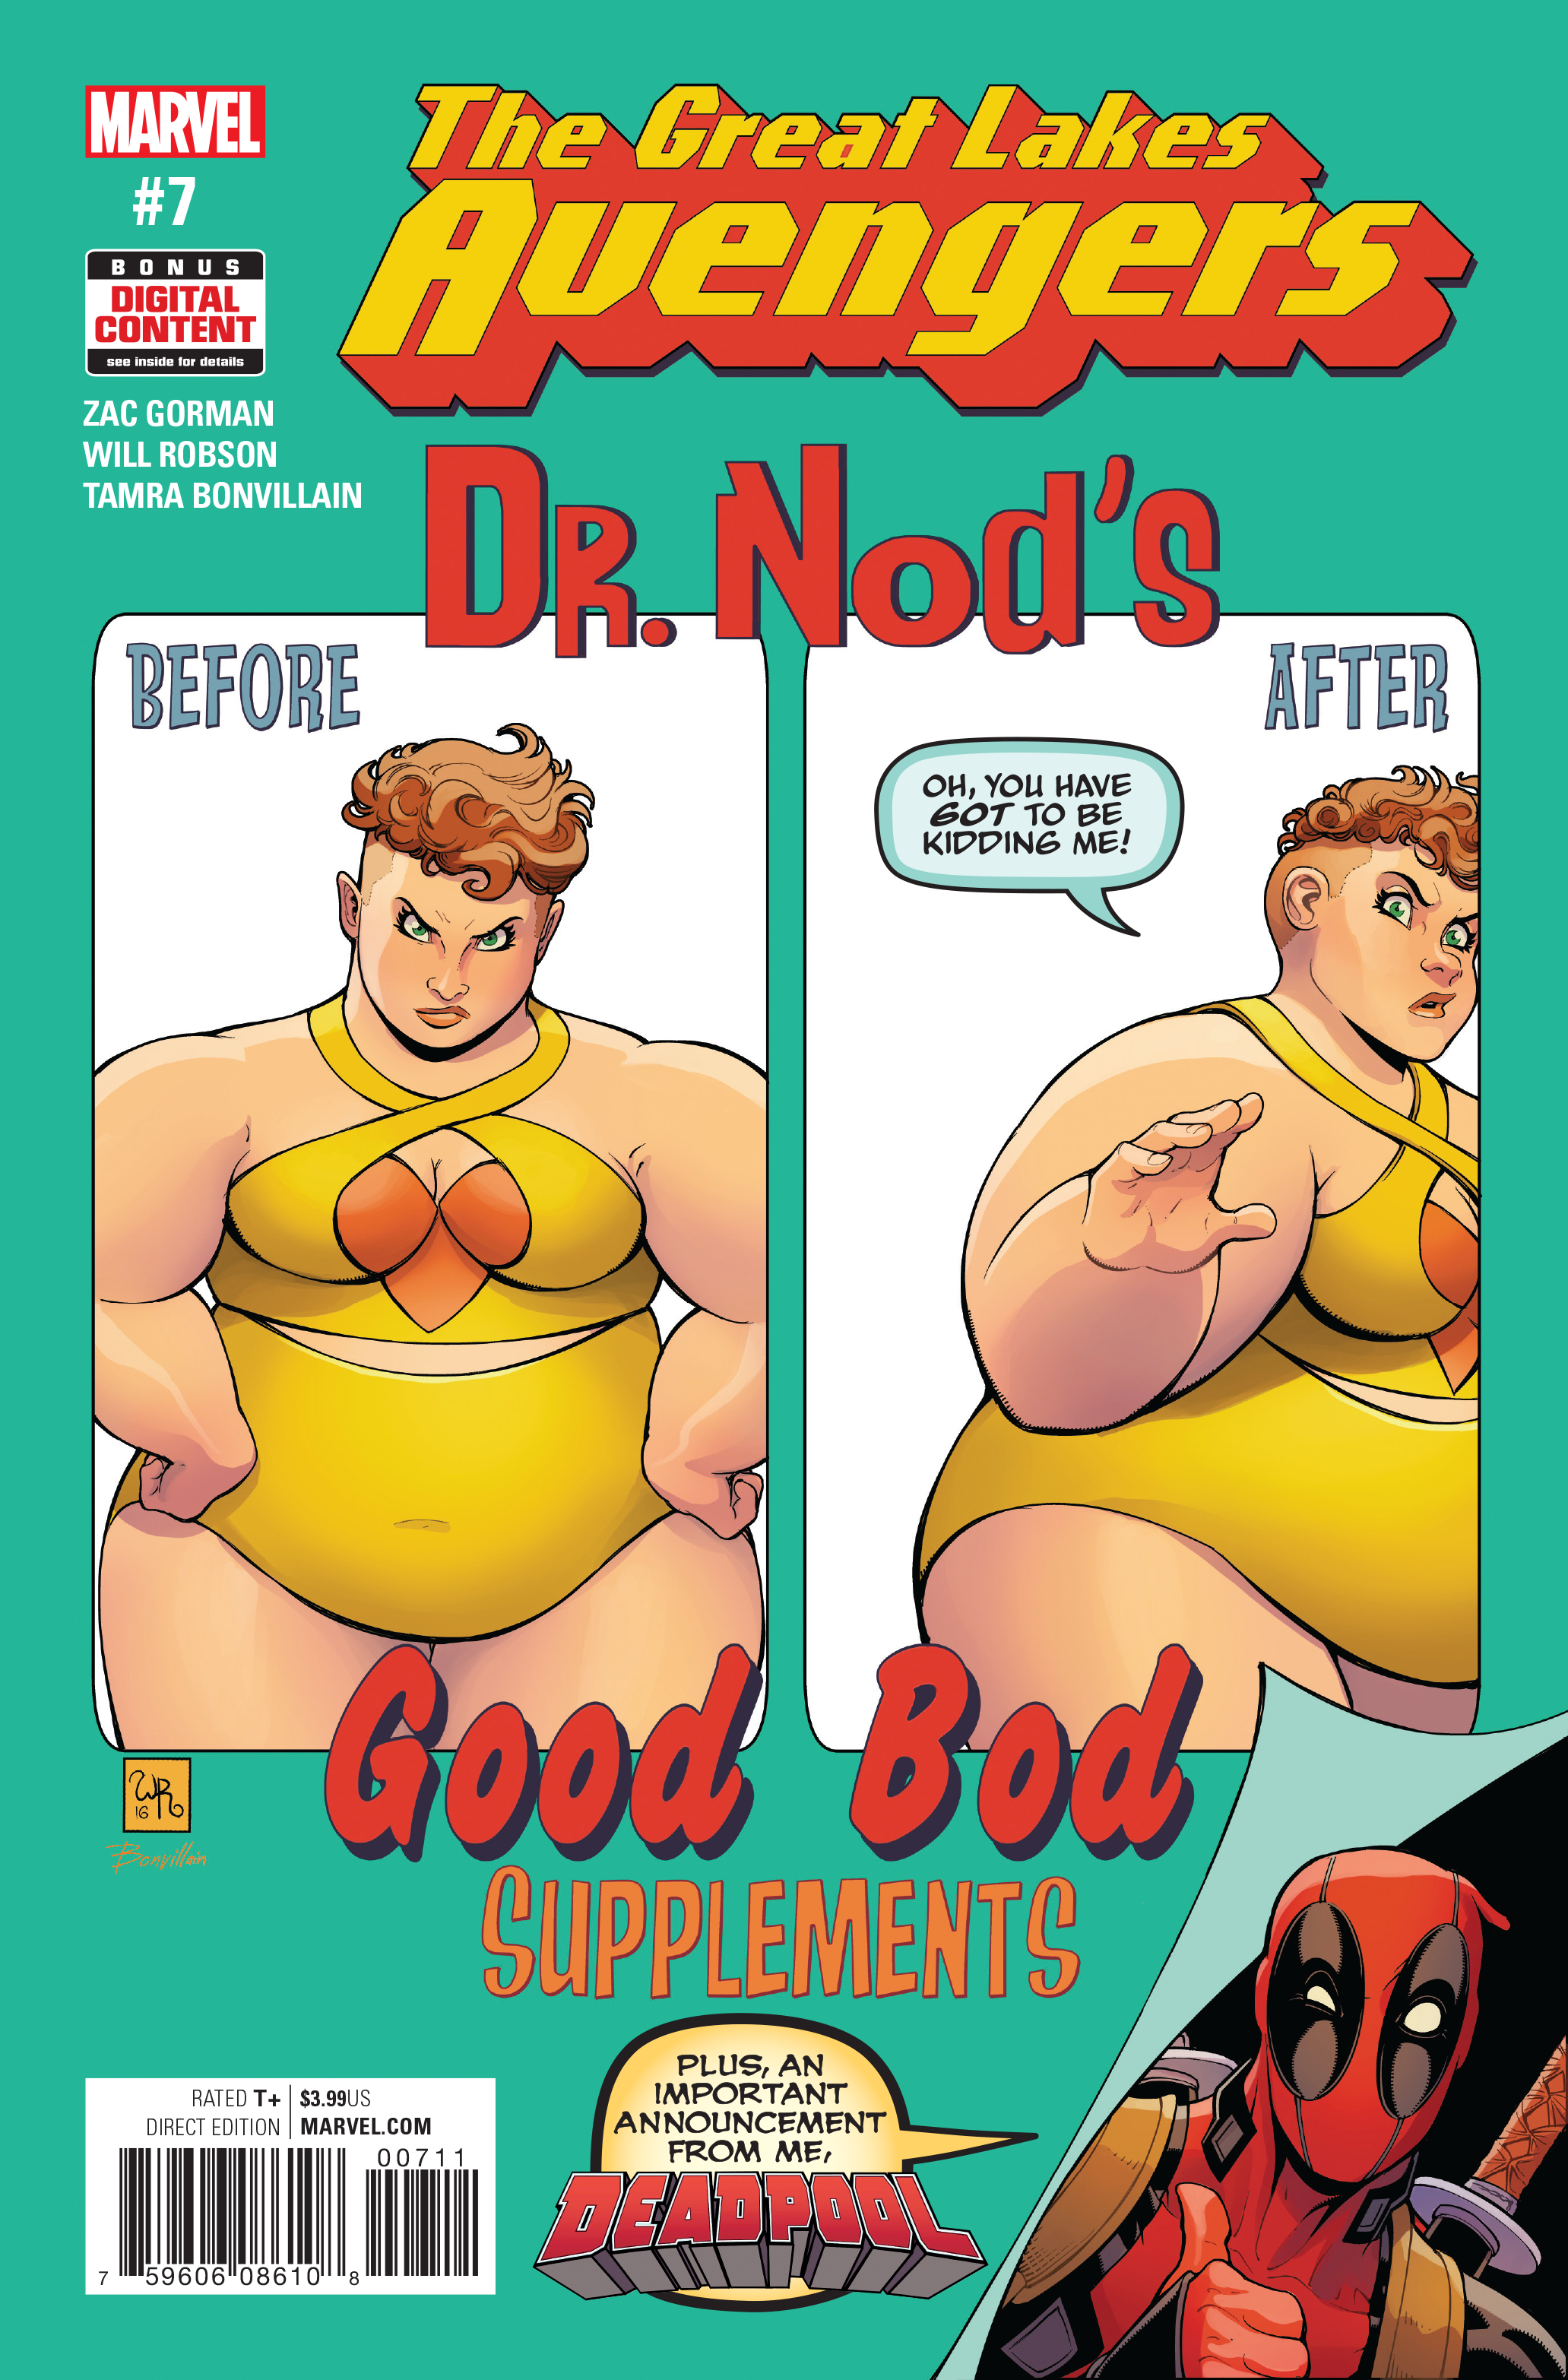 GREAT LAKES AVENGERS #7